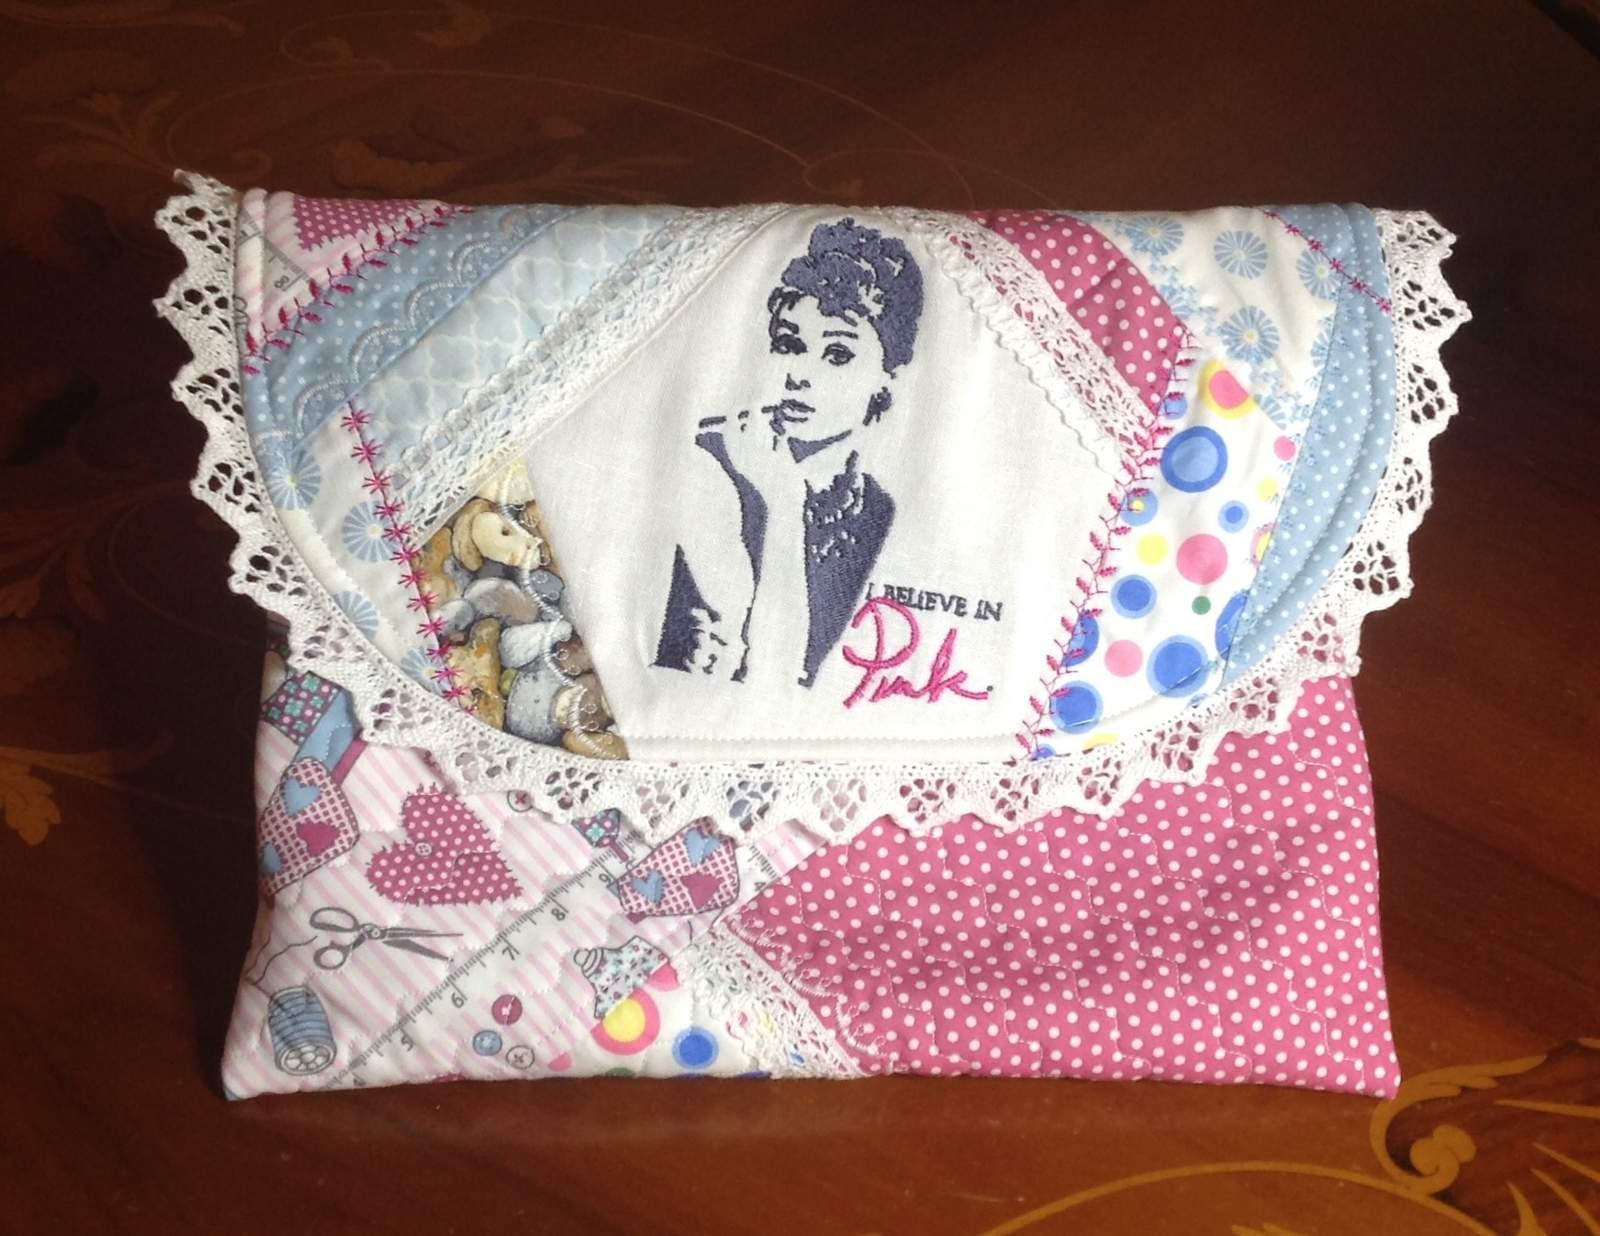 Baby bag with a portrait of Audrey Hepburn embroidery design